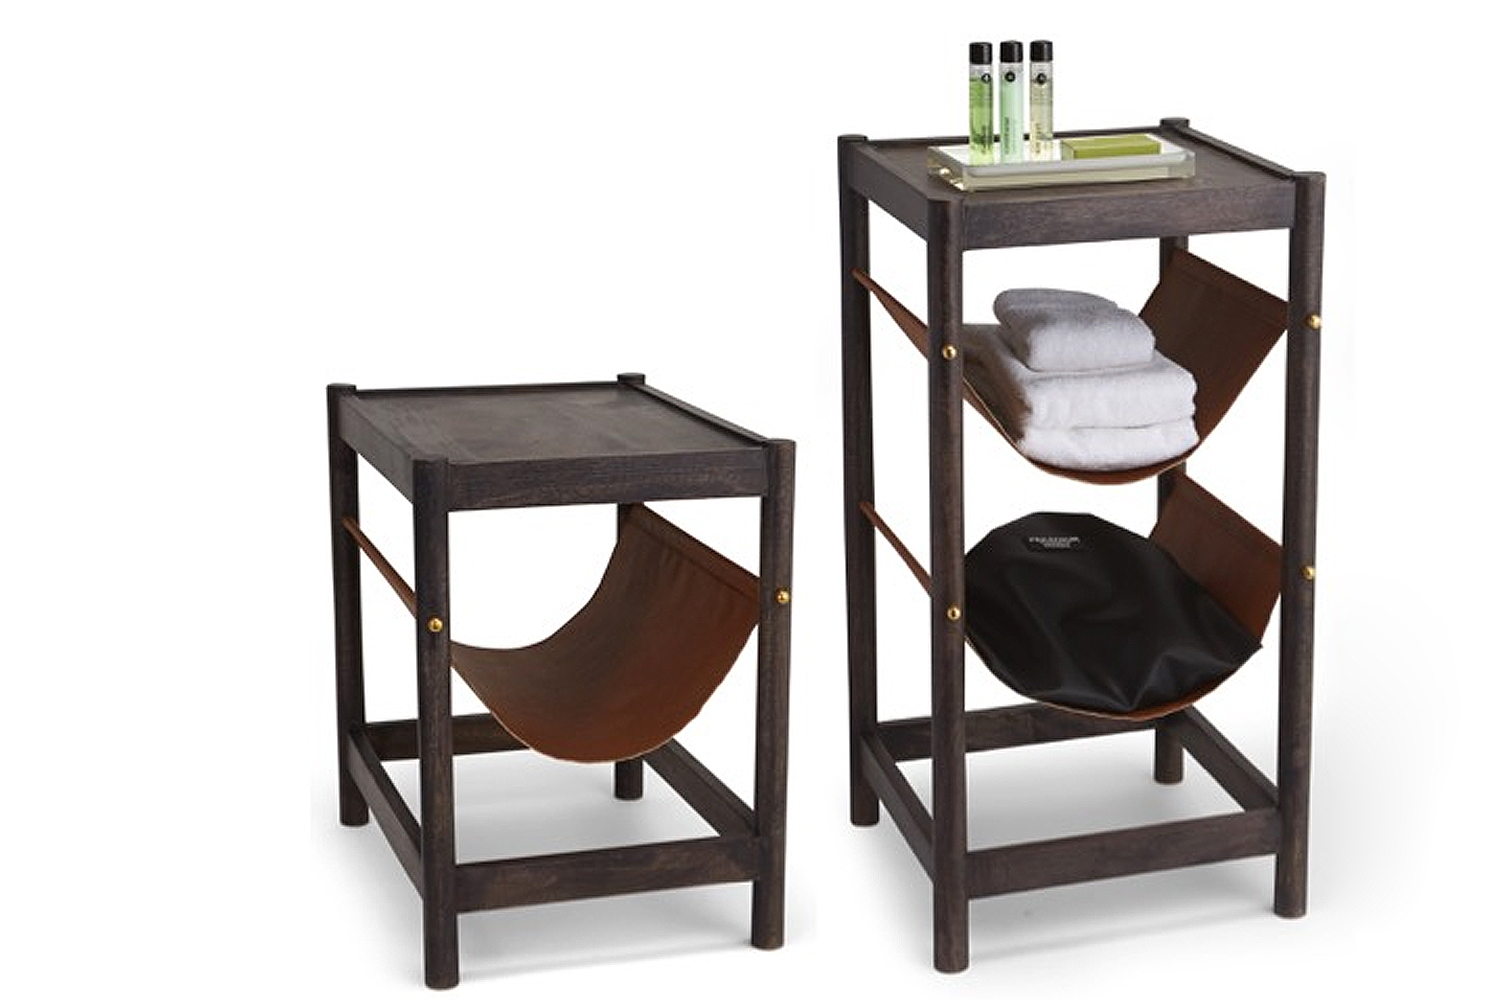 Introducing the Sling Fling table and the Sling Fling Tall, new products from Paradigm Trends.